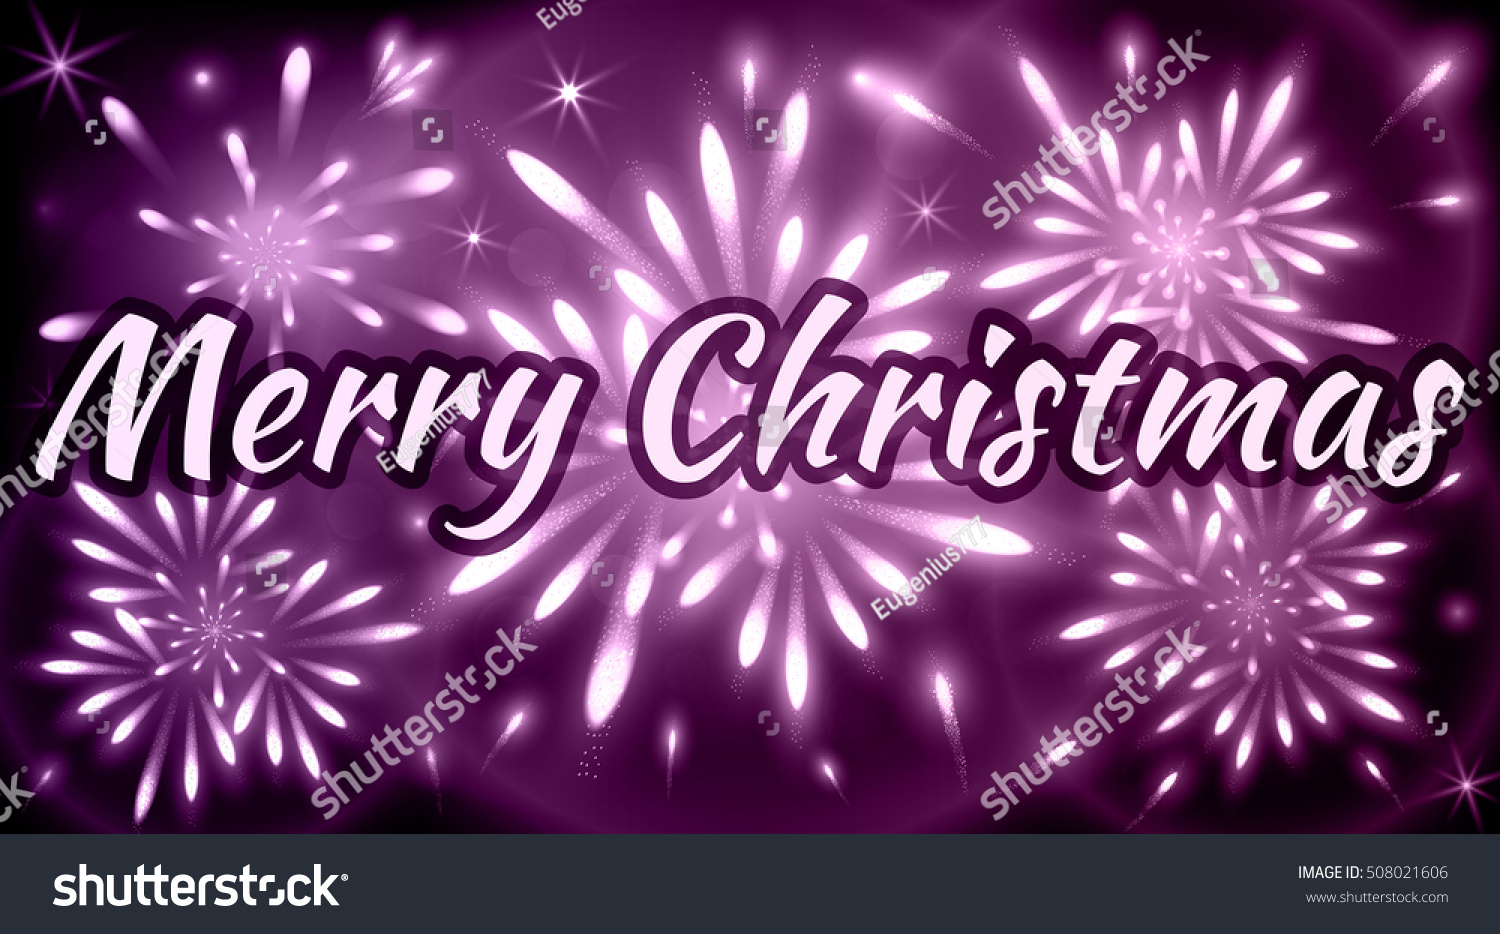 Merry Christmas Greeting Card Fireworks Violet Stock Vector